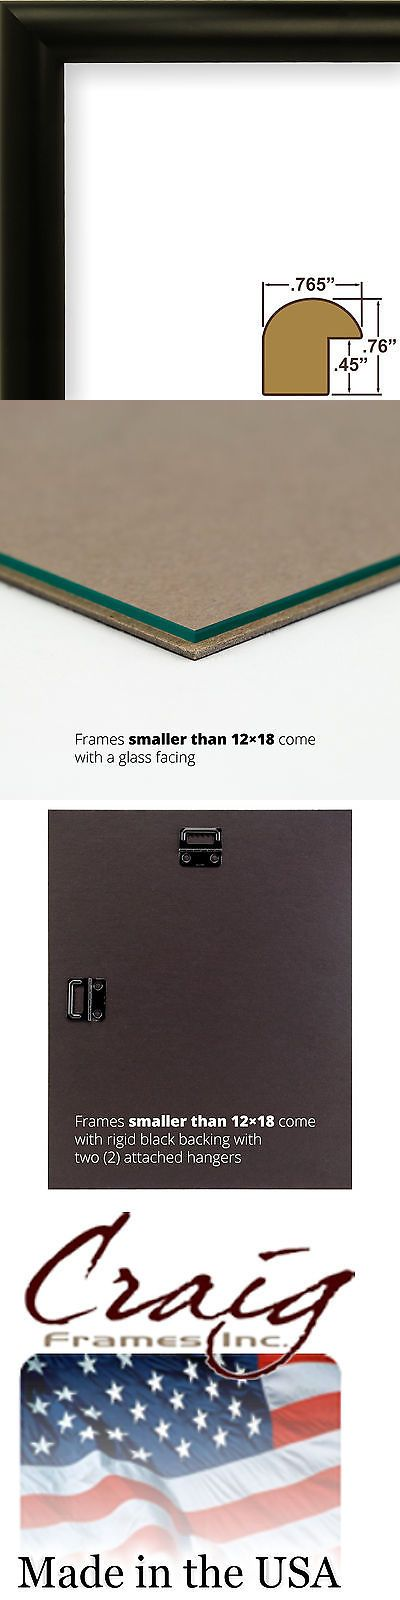 Frames 79654: Craig Frames Bullnose, Contemporary Black Picture Frame -> BUY IT NOW ONLY: $80 on eBay!